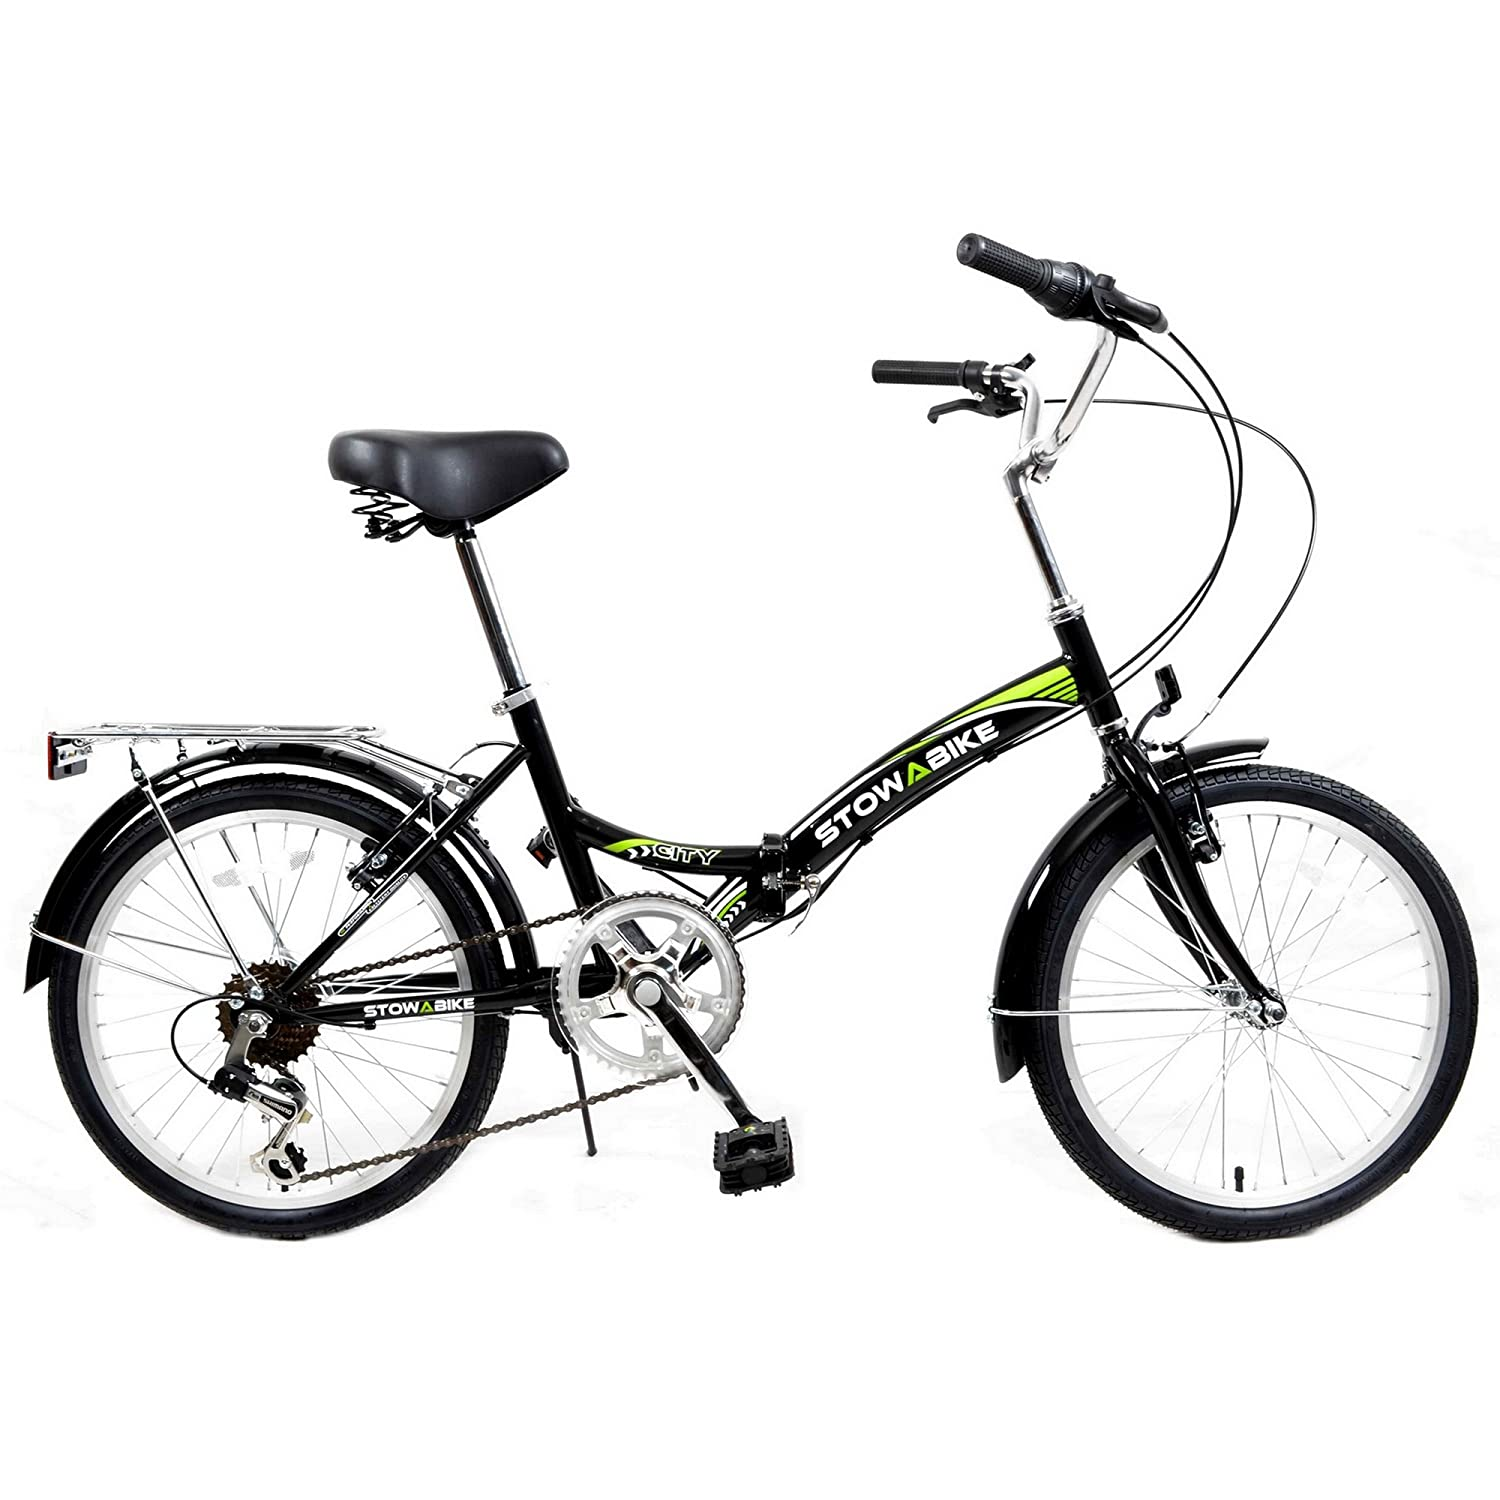 Best folding bike Stowabike 16